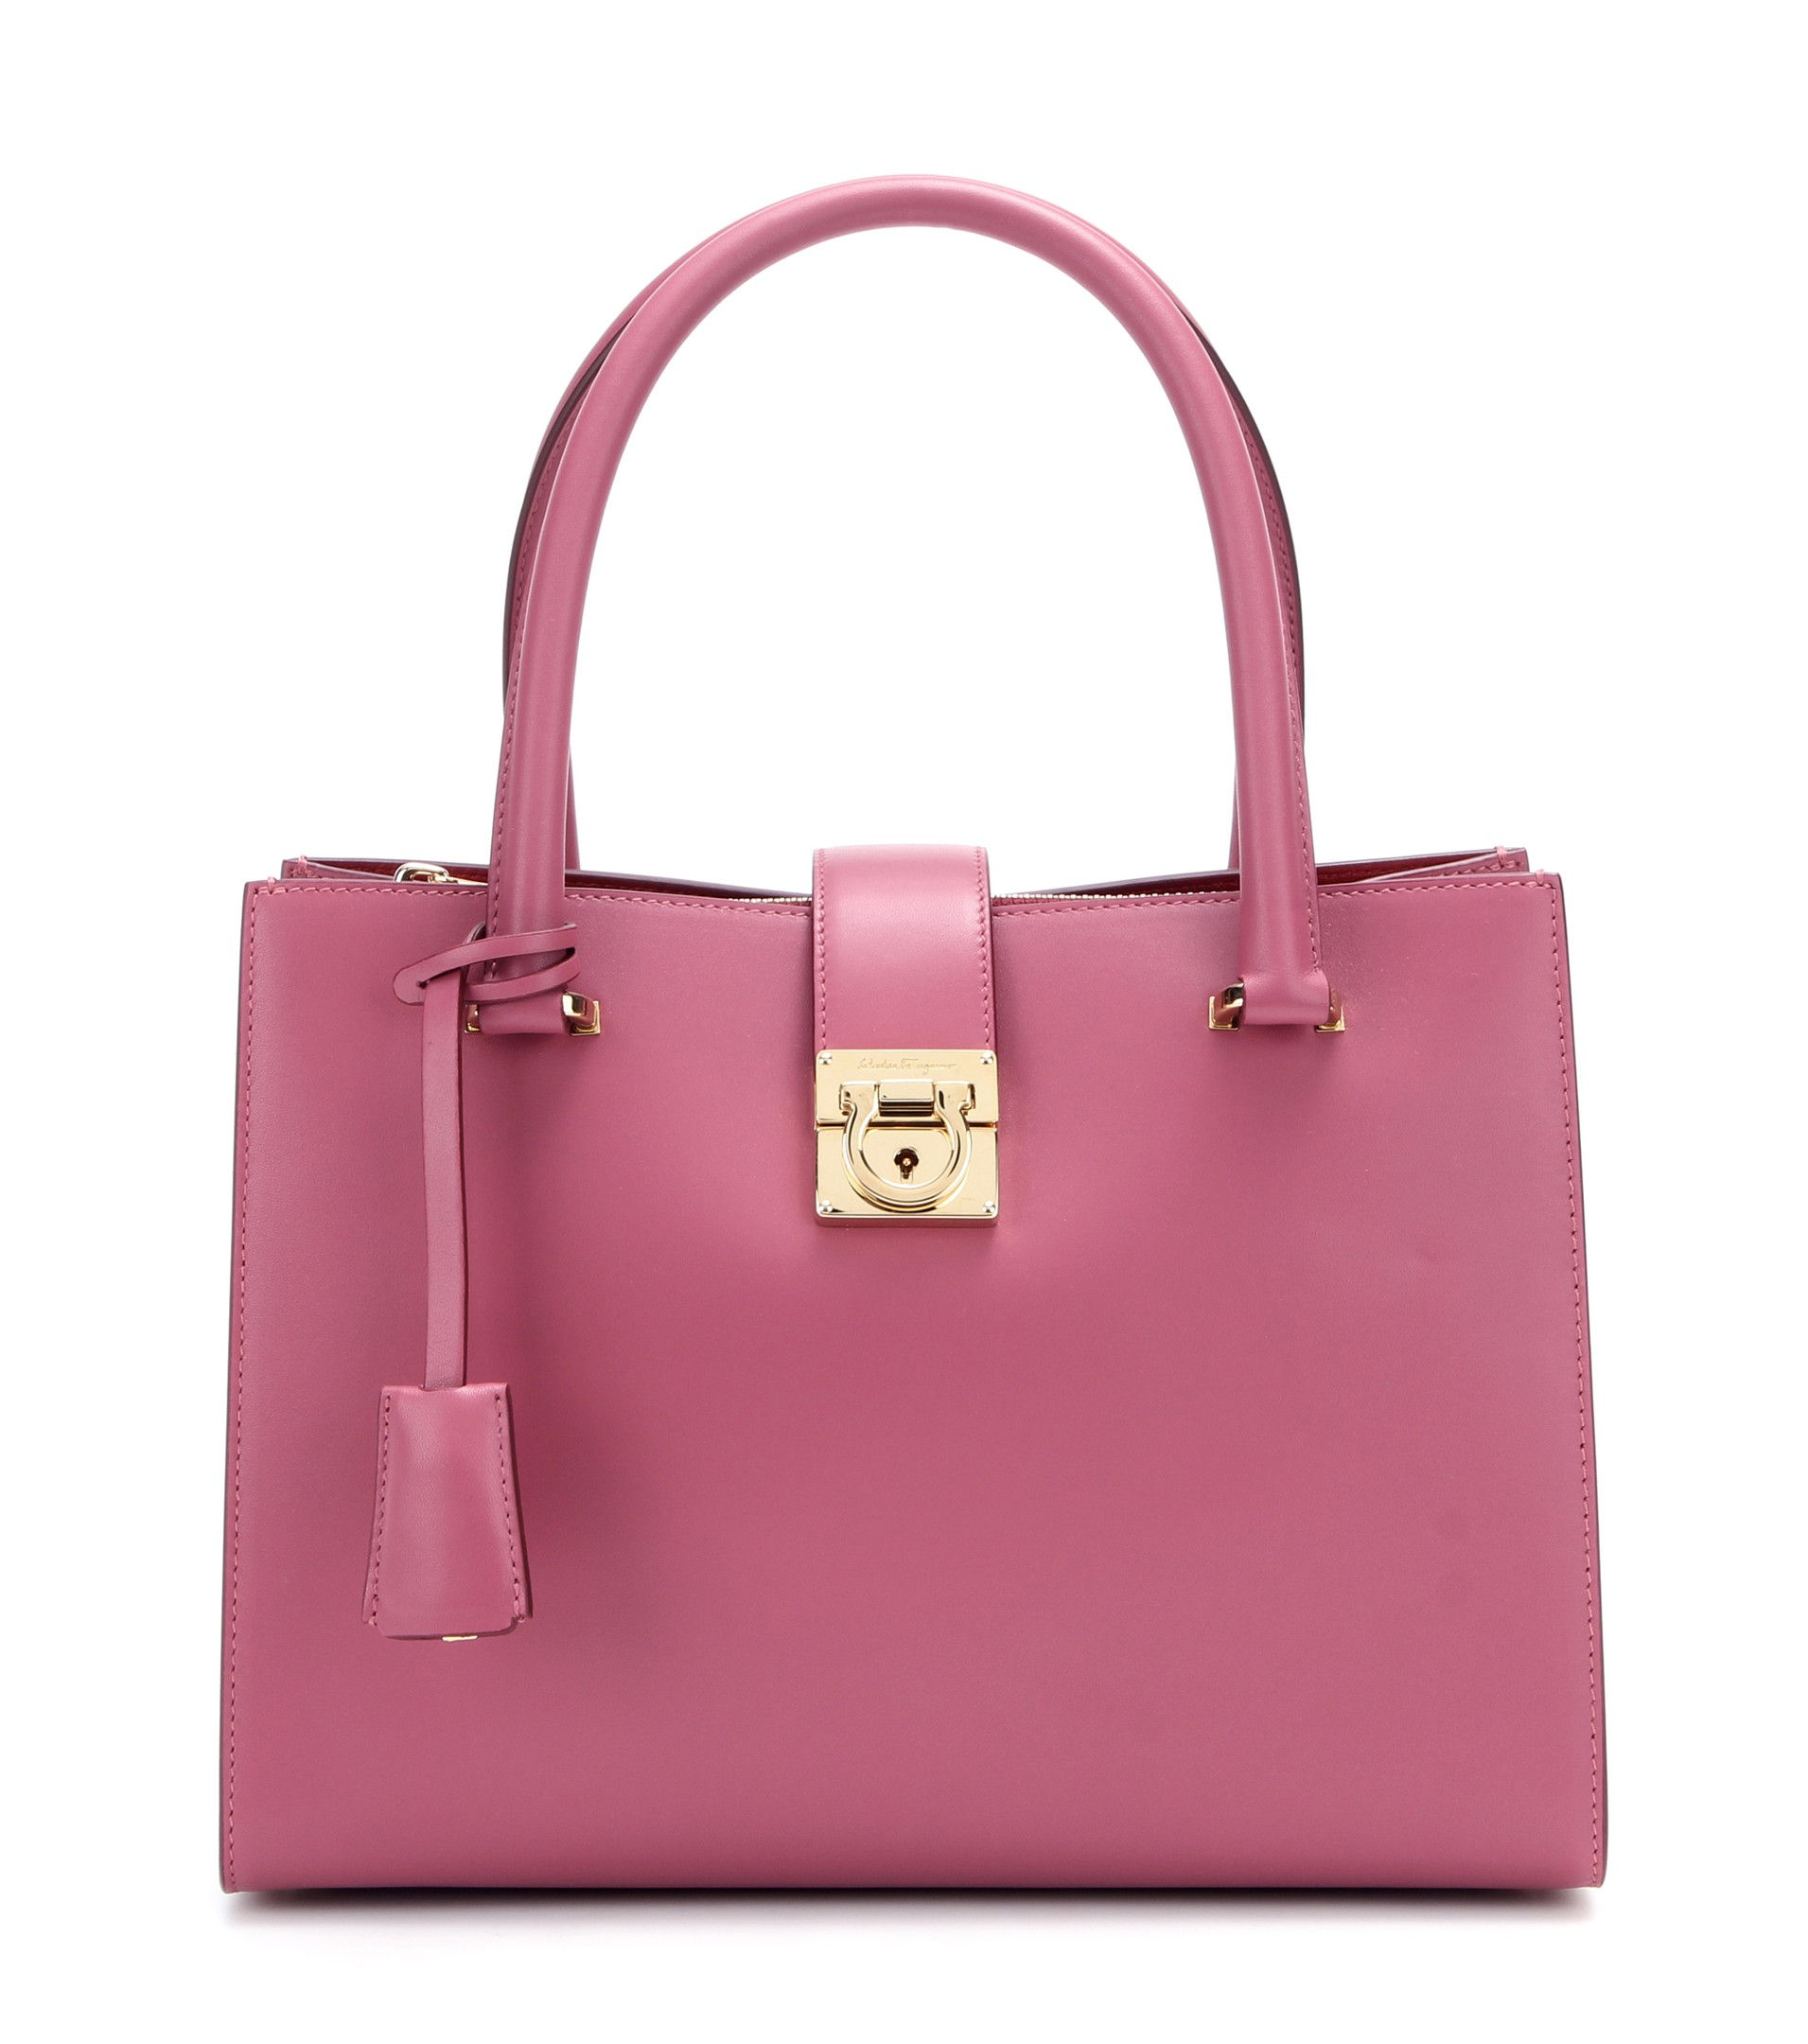 1cee93325908 Lyst - Ferragamo Juliette Leather Tote in Pink